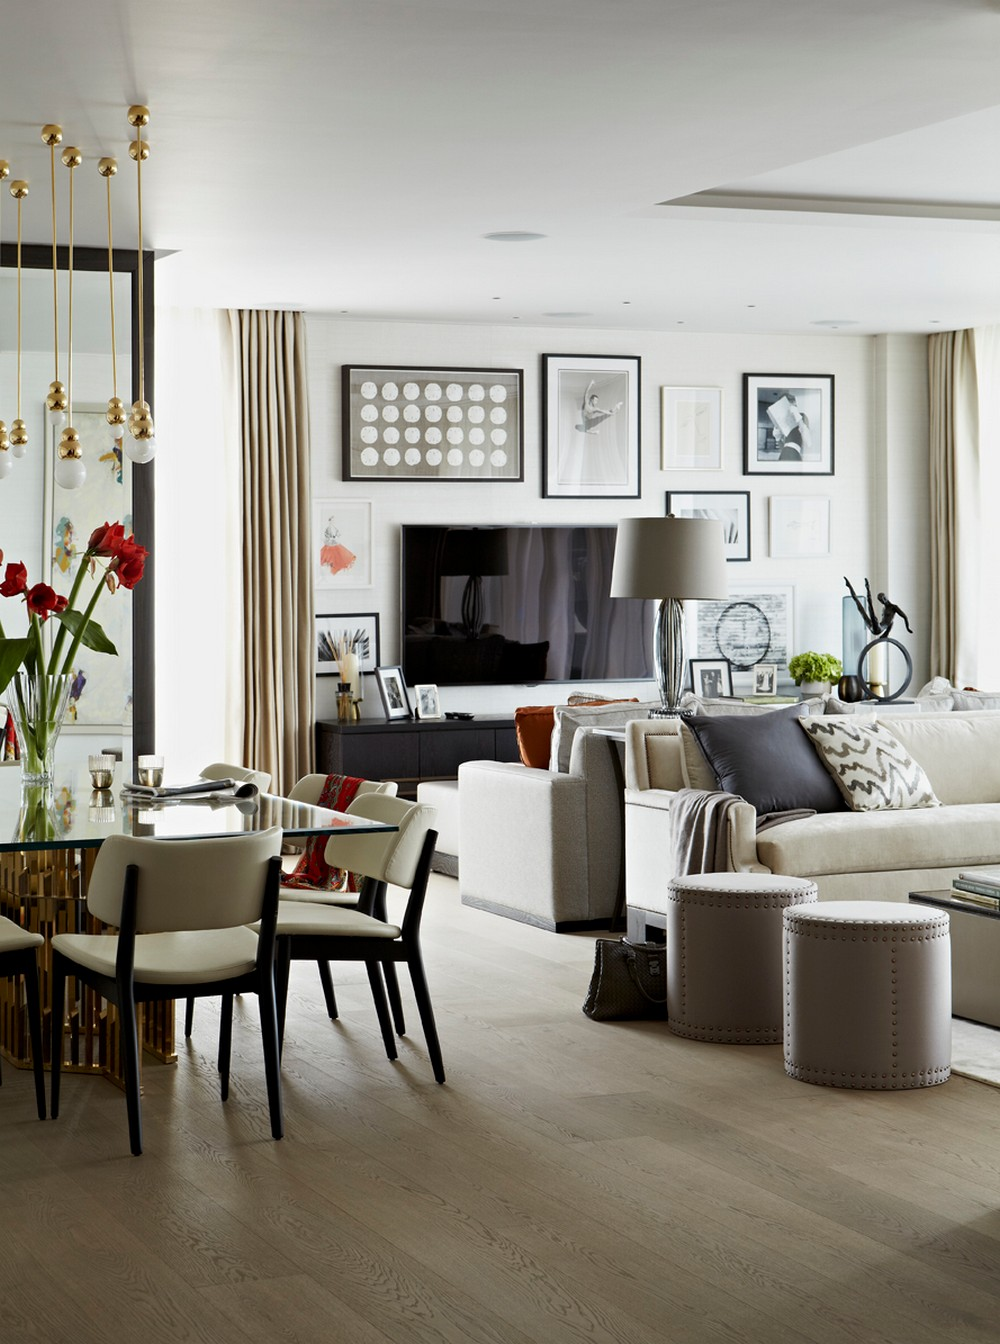 Taylor Howes: Luxury Design, Bespoke Interiors and Ageless Elegance taylor howes Taylor Howes: Luxury Design, Bespoke Interiors and Ageless Elegance 2 homify